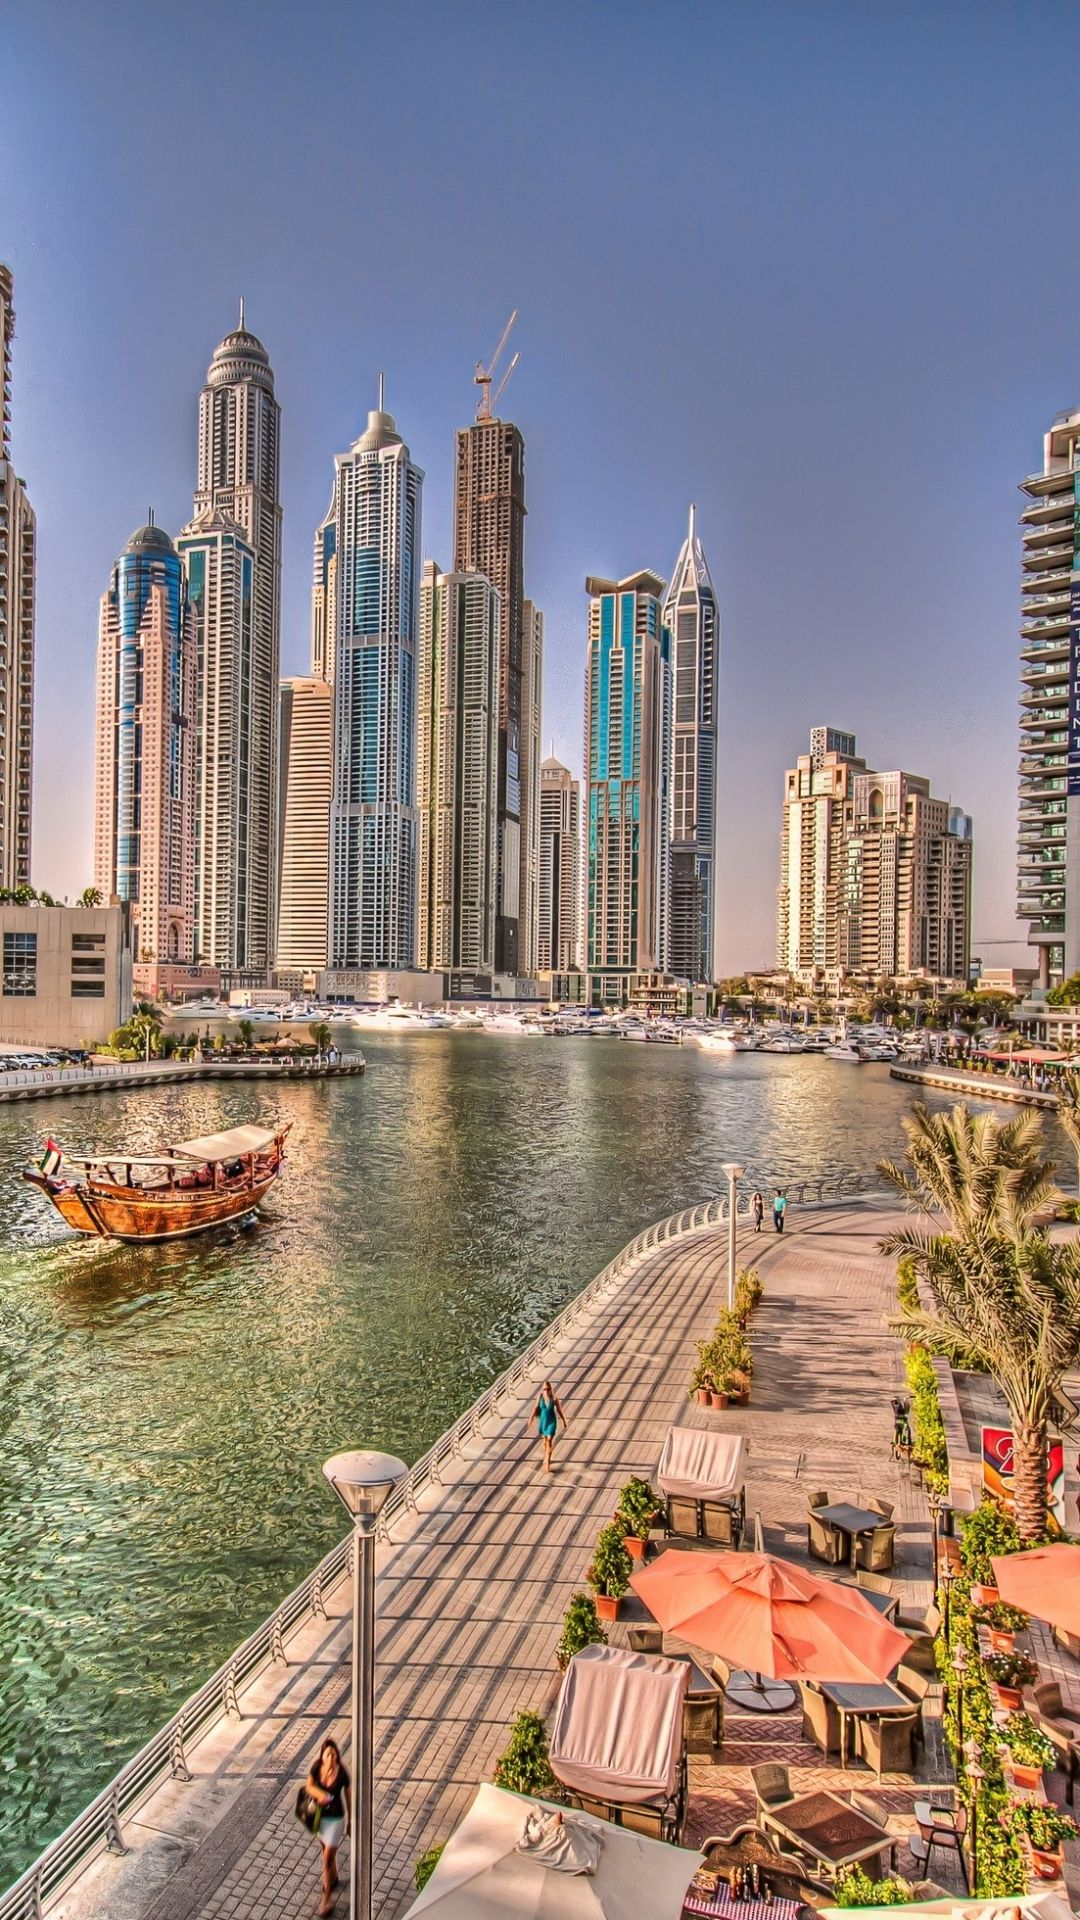 Dubai iPhone Wallpapers - Top Free Dubai iPhone Backgrounds